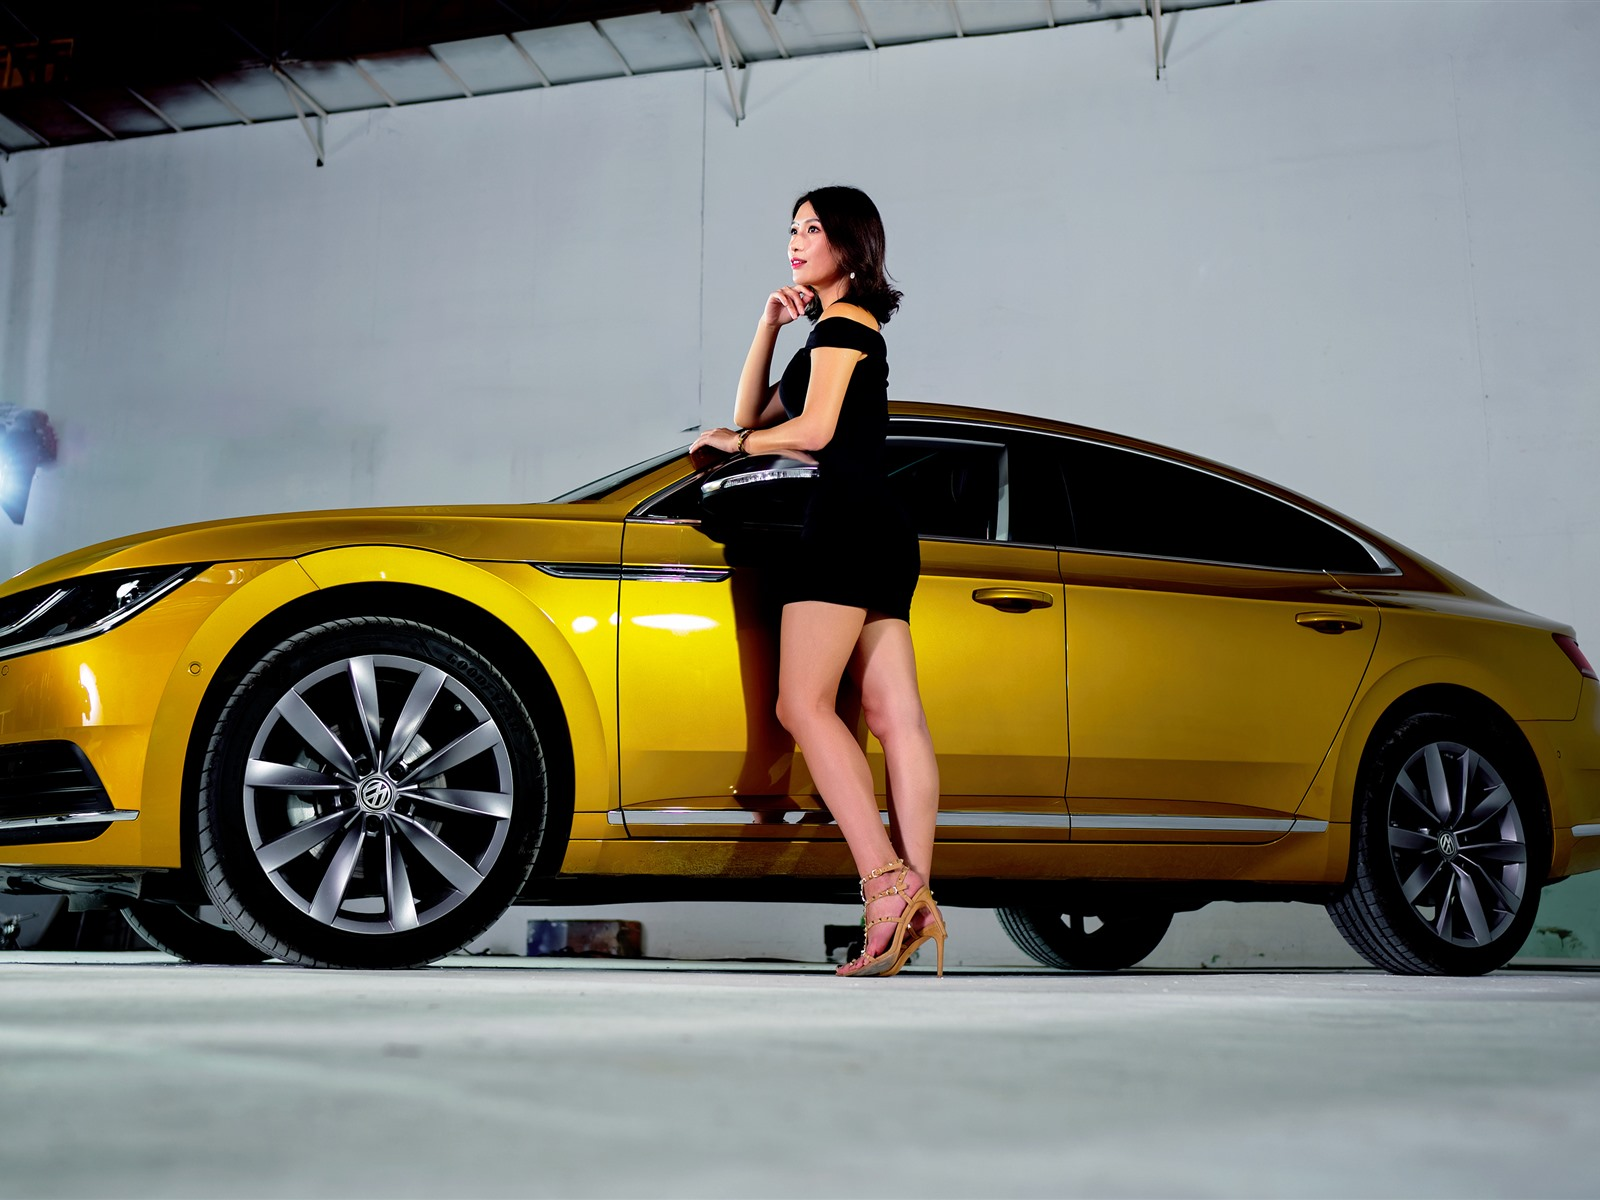 Wallpaper volkswagen yellow car side view black skirt girl 2880x1800 hd picture image - Car side view wallpaper ...